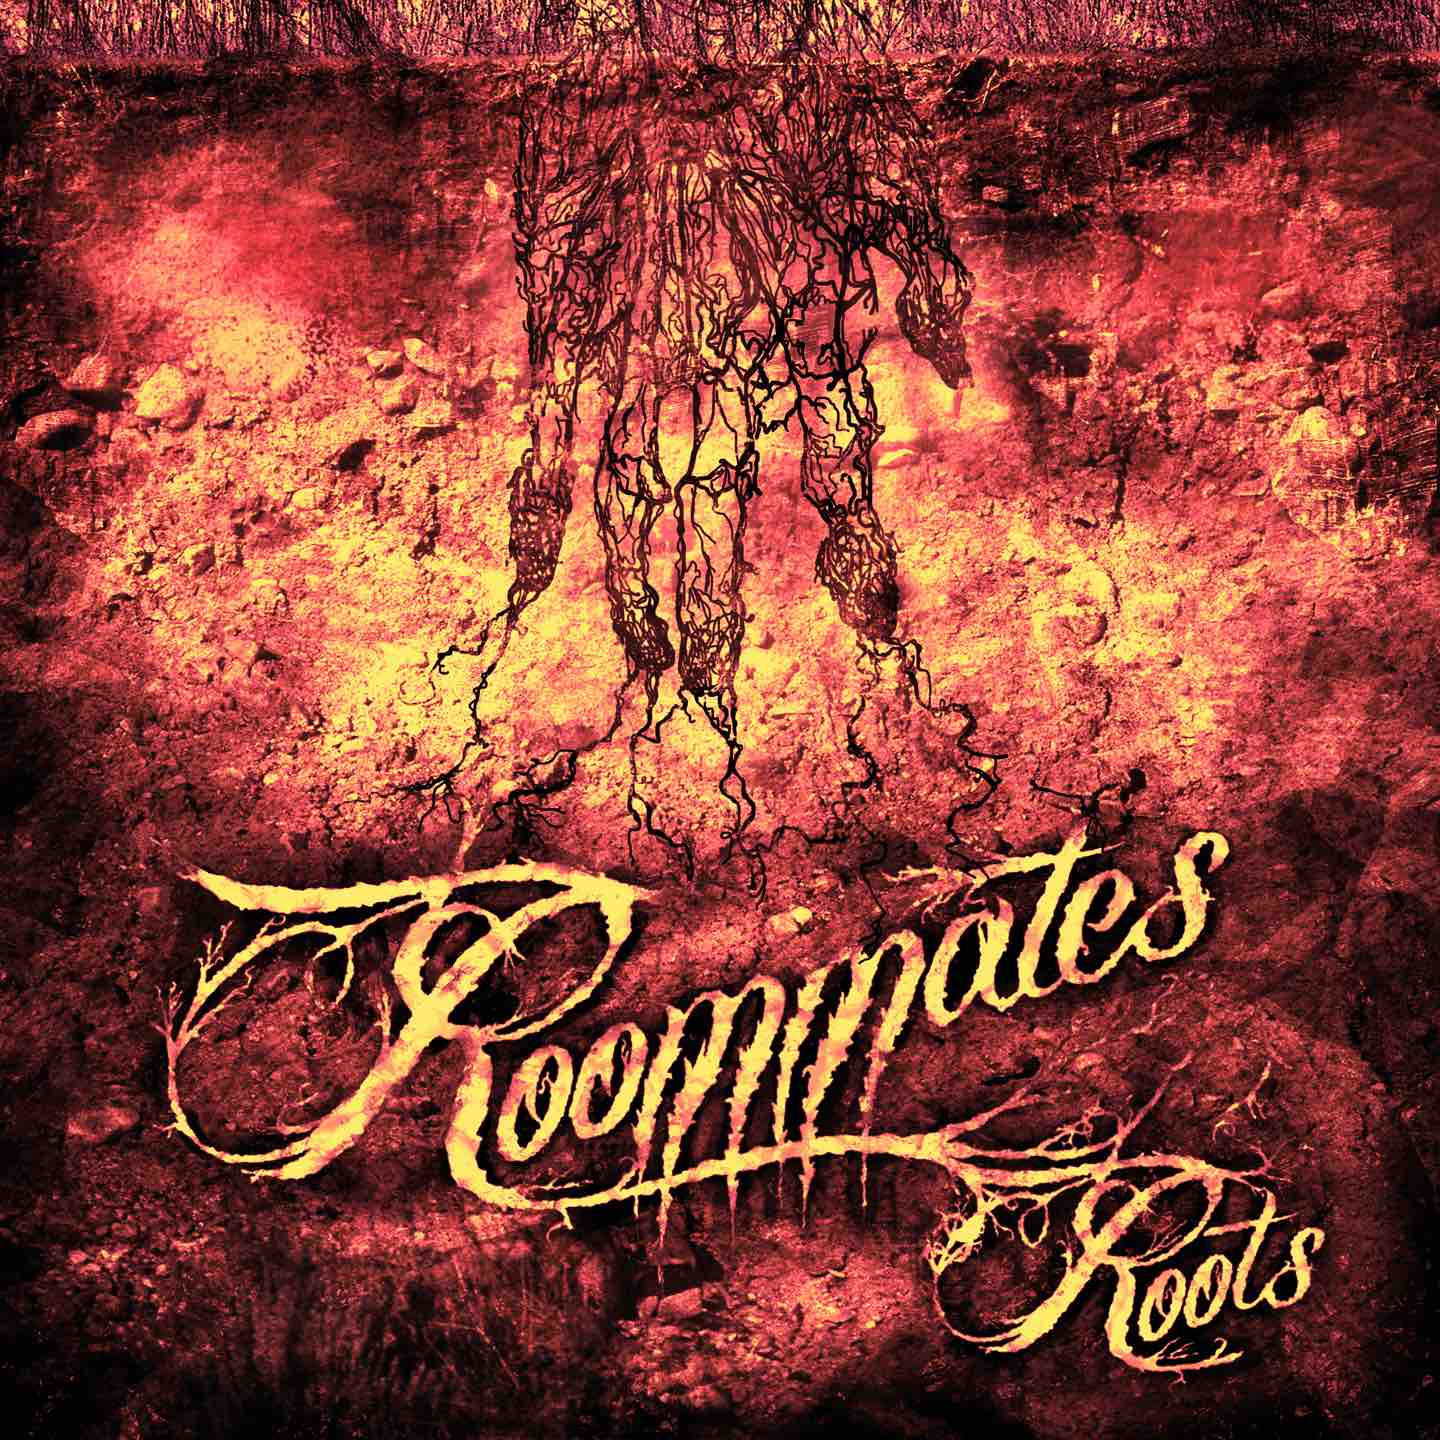 Roommates Roots 2020 front